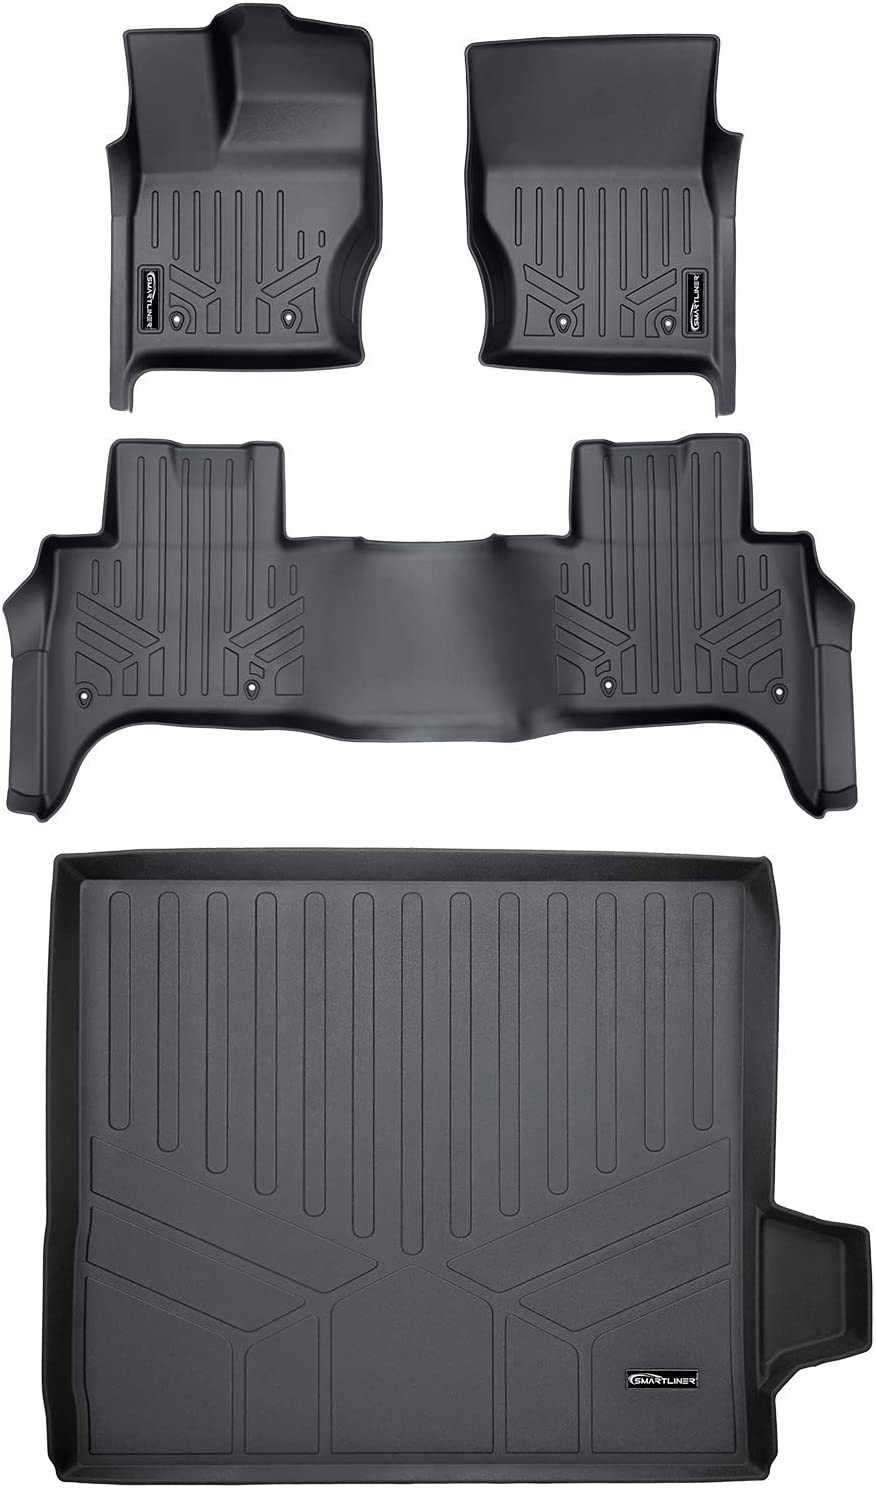 MAXLINER Floor Mats 2 Rows and Cargo Liner Trunk Set Black for 2014-2020 Land Rover Range Rover Sport (5 Passenger Model)